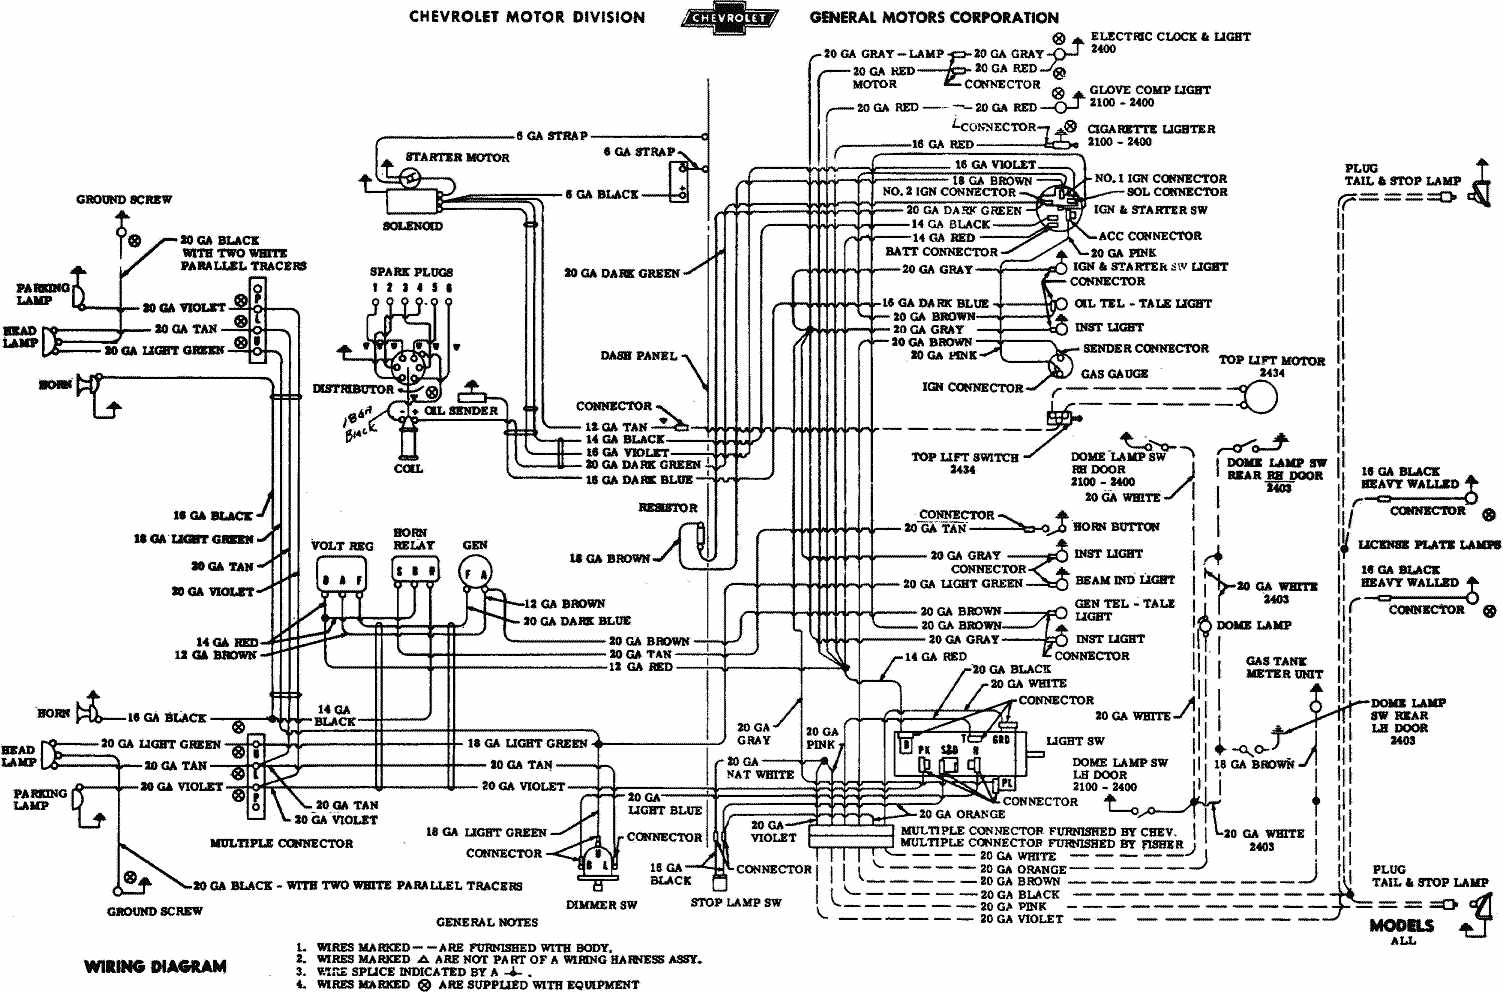 Wiring For 1957 Chevy Data Diagram Generator Harness 1955 Bel Air Database